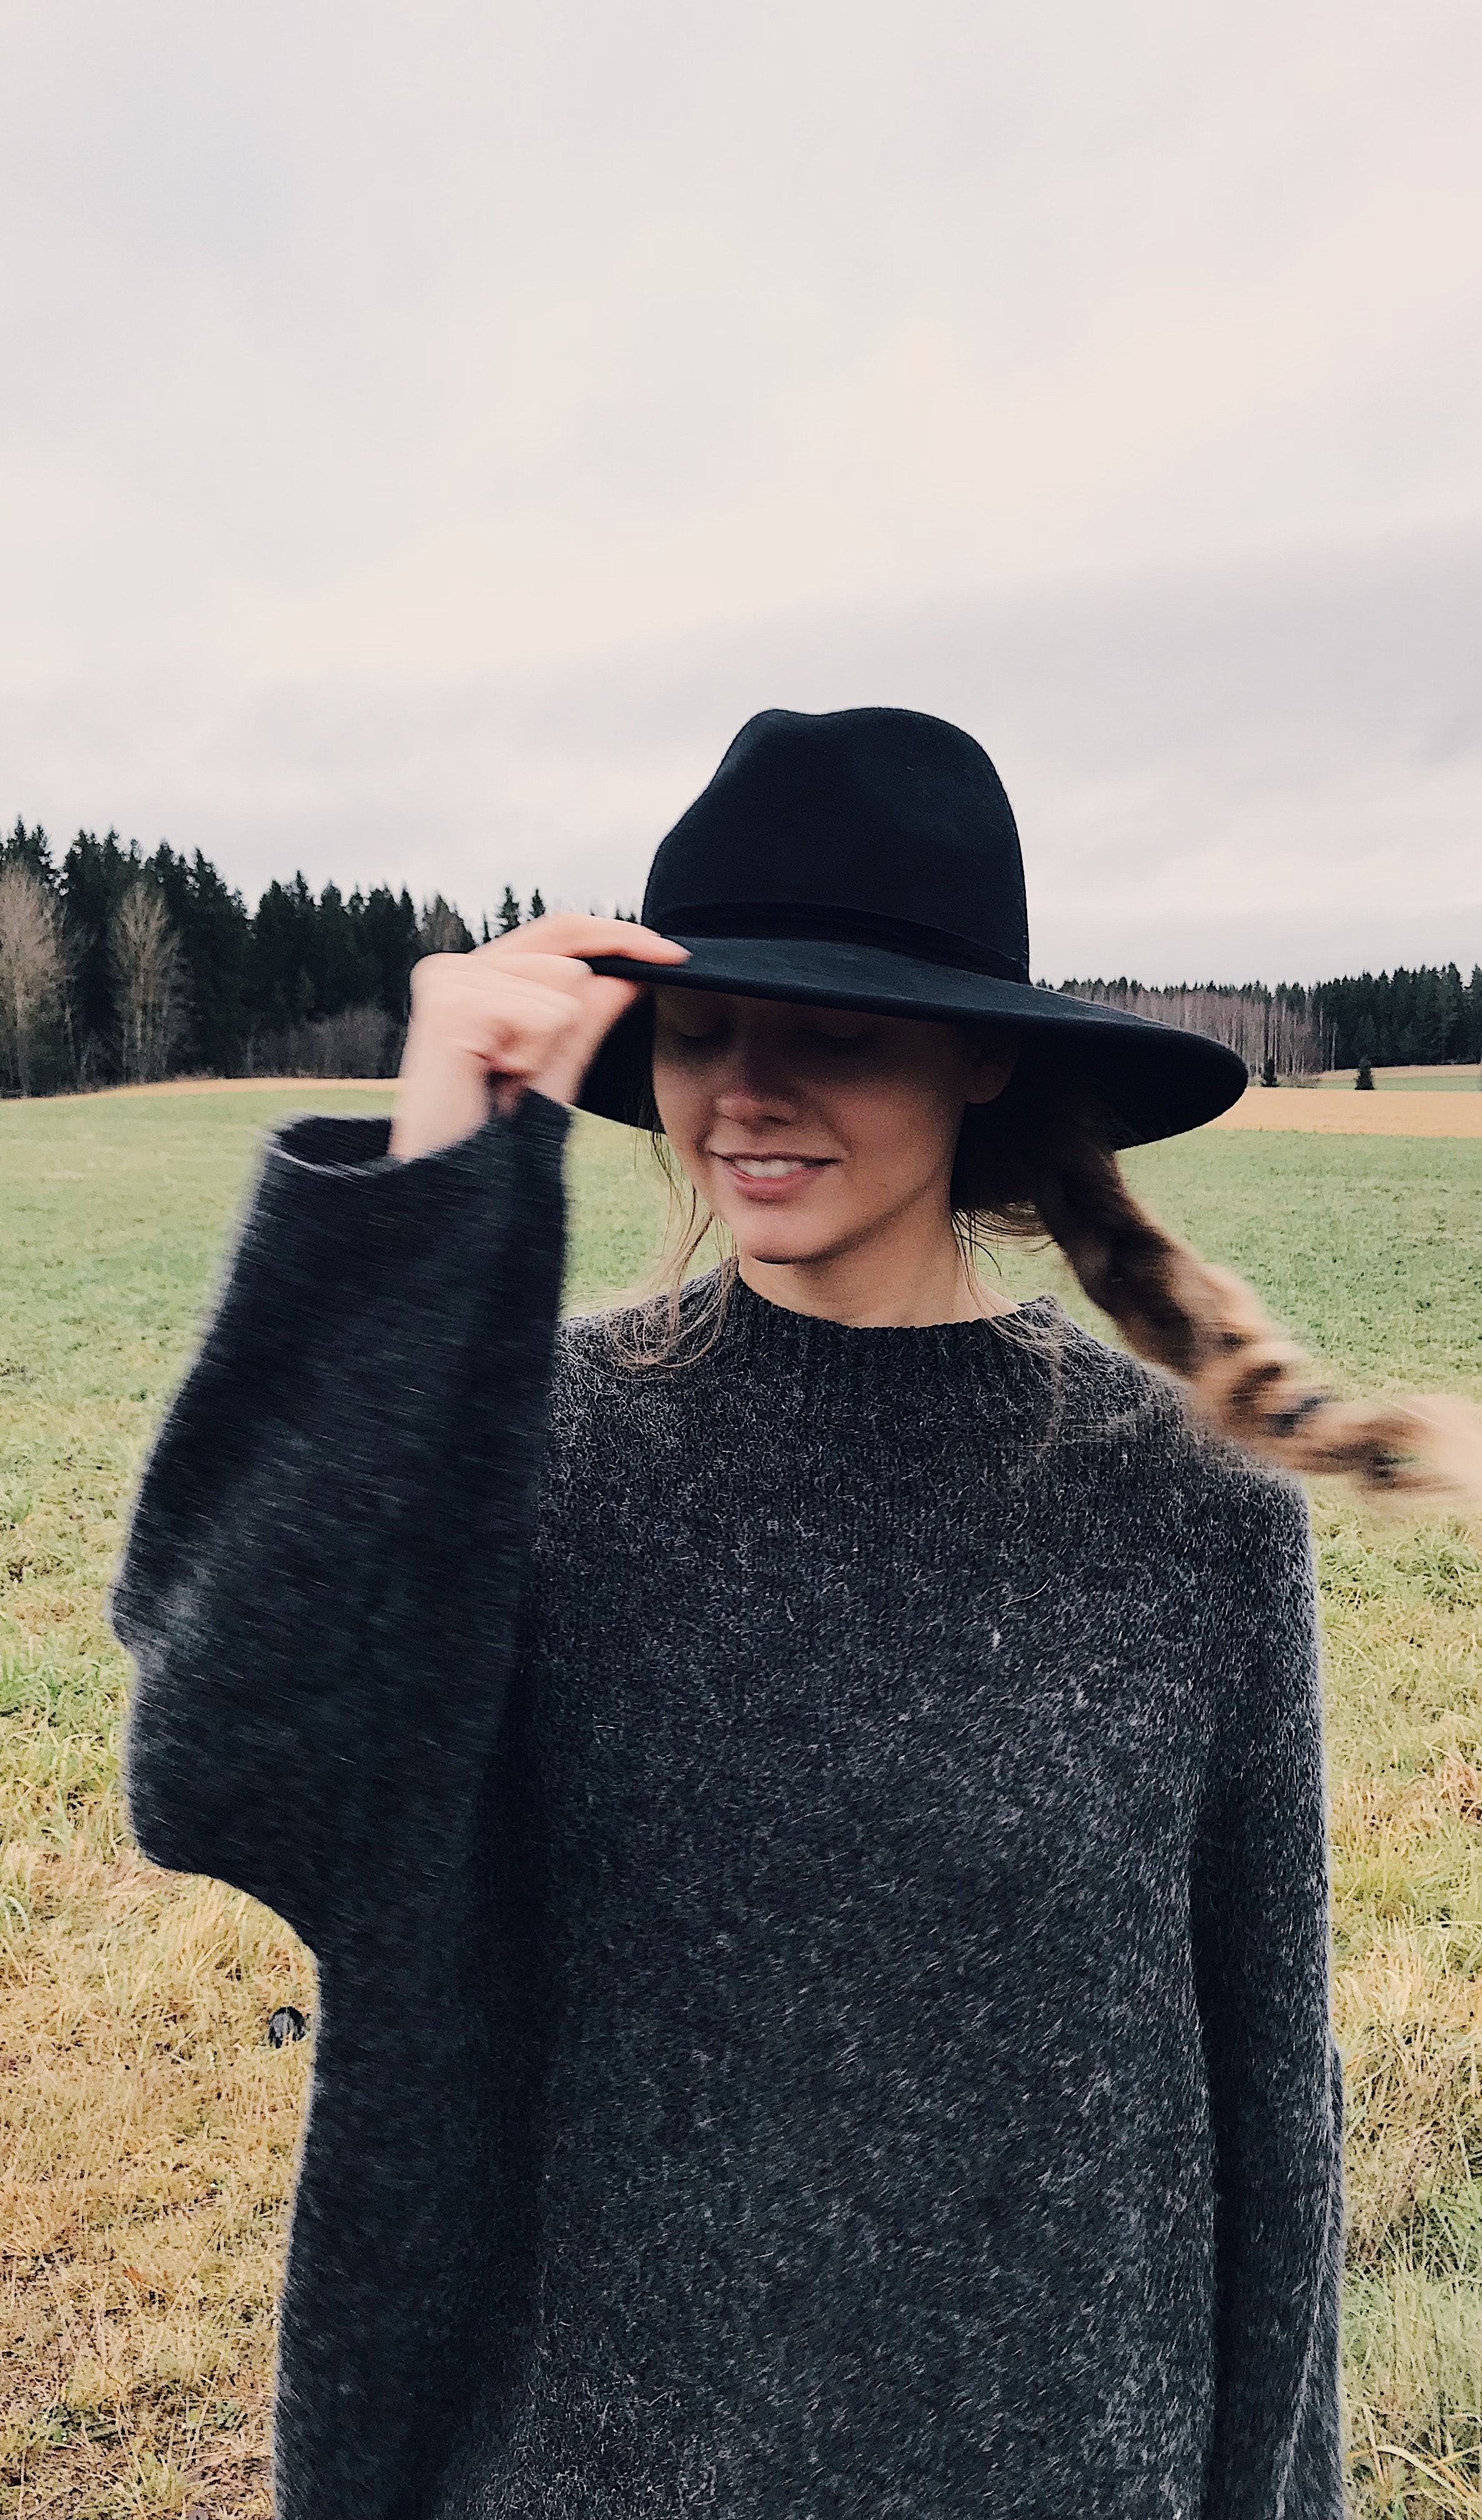 Woman wearing and holding black summer hat outdoor photo